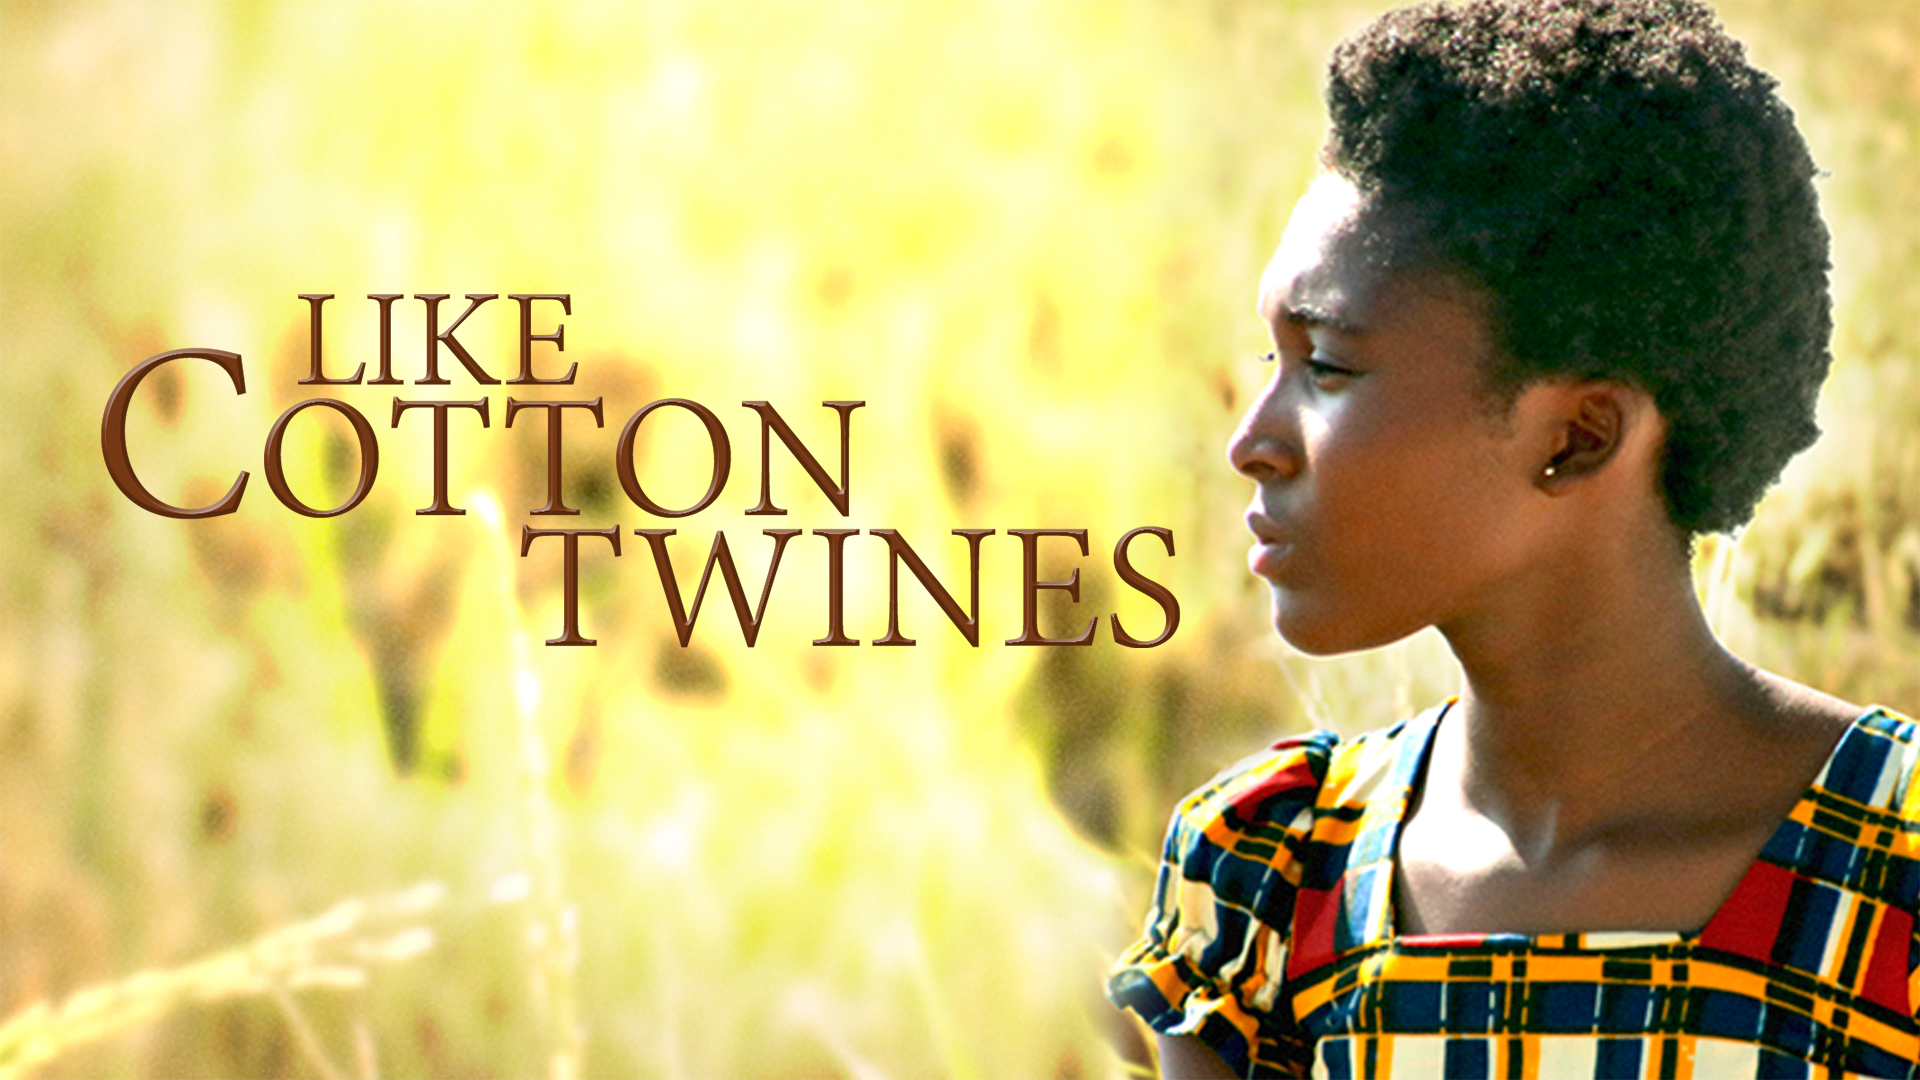 Like Cotton Twines - Celebrate Women's Stories category image